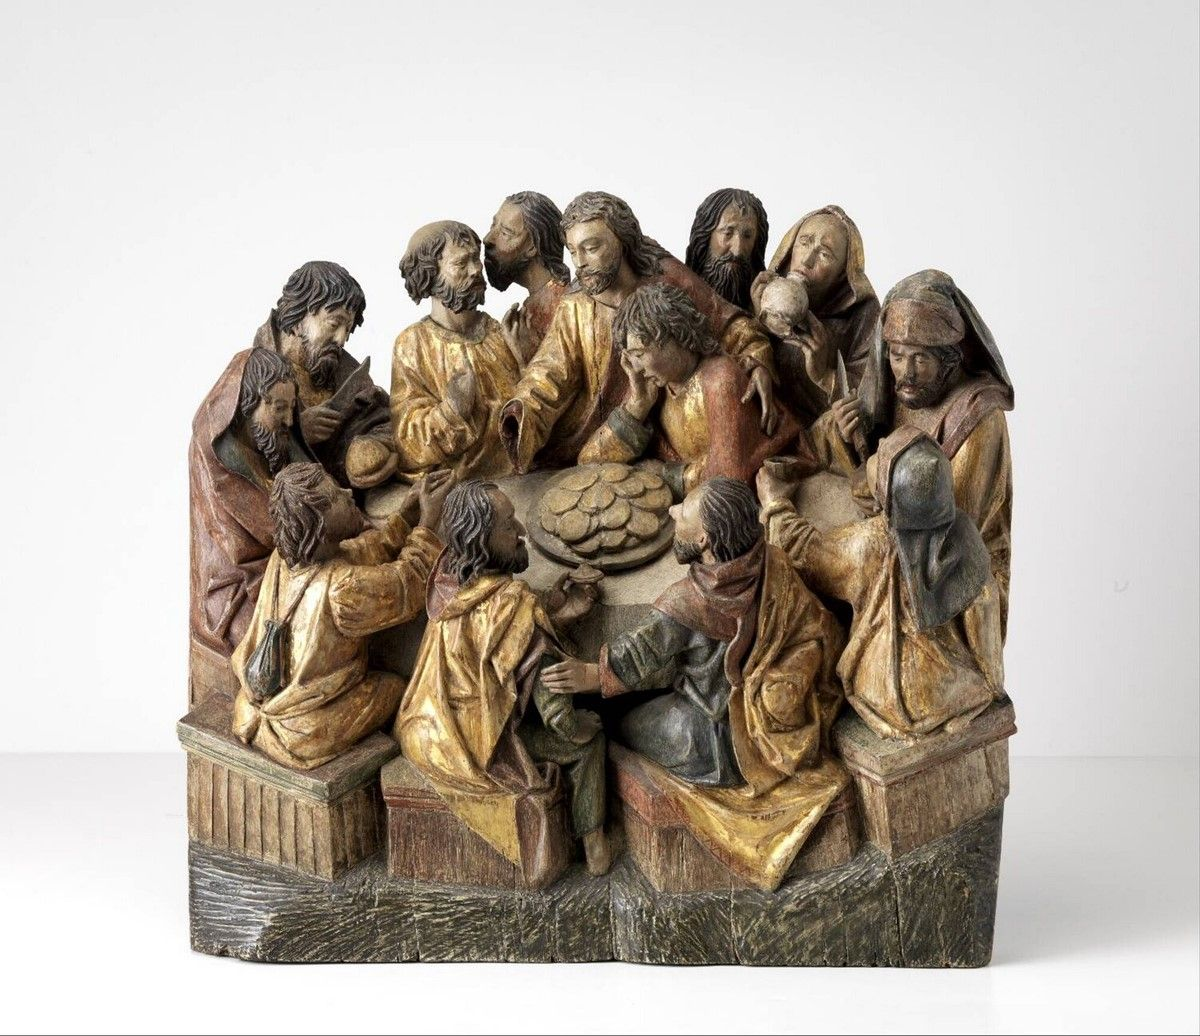 The last supper Sculptorn Adriaen van Wesel, Utrecht circa 1417 - Utrecht circa 1490 1417 - 1490 Dimensions 52 x 55 x 19,3 cm Material and technique oak-wood